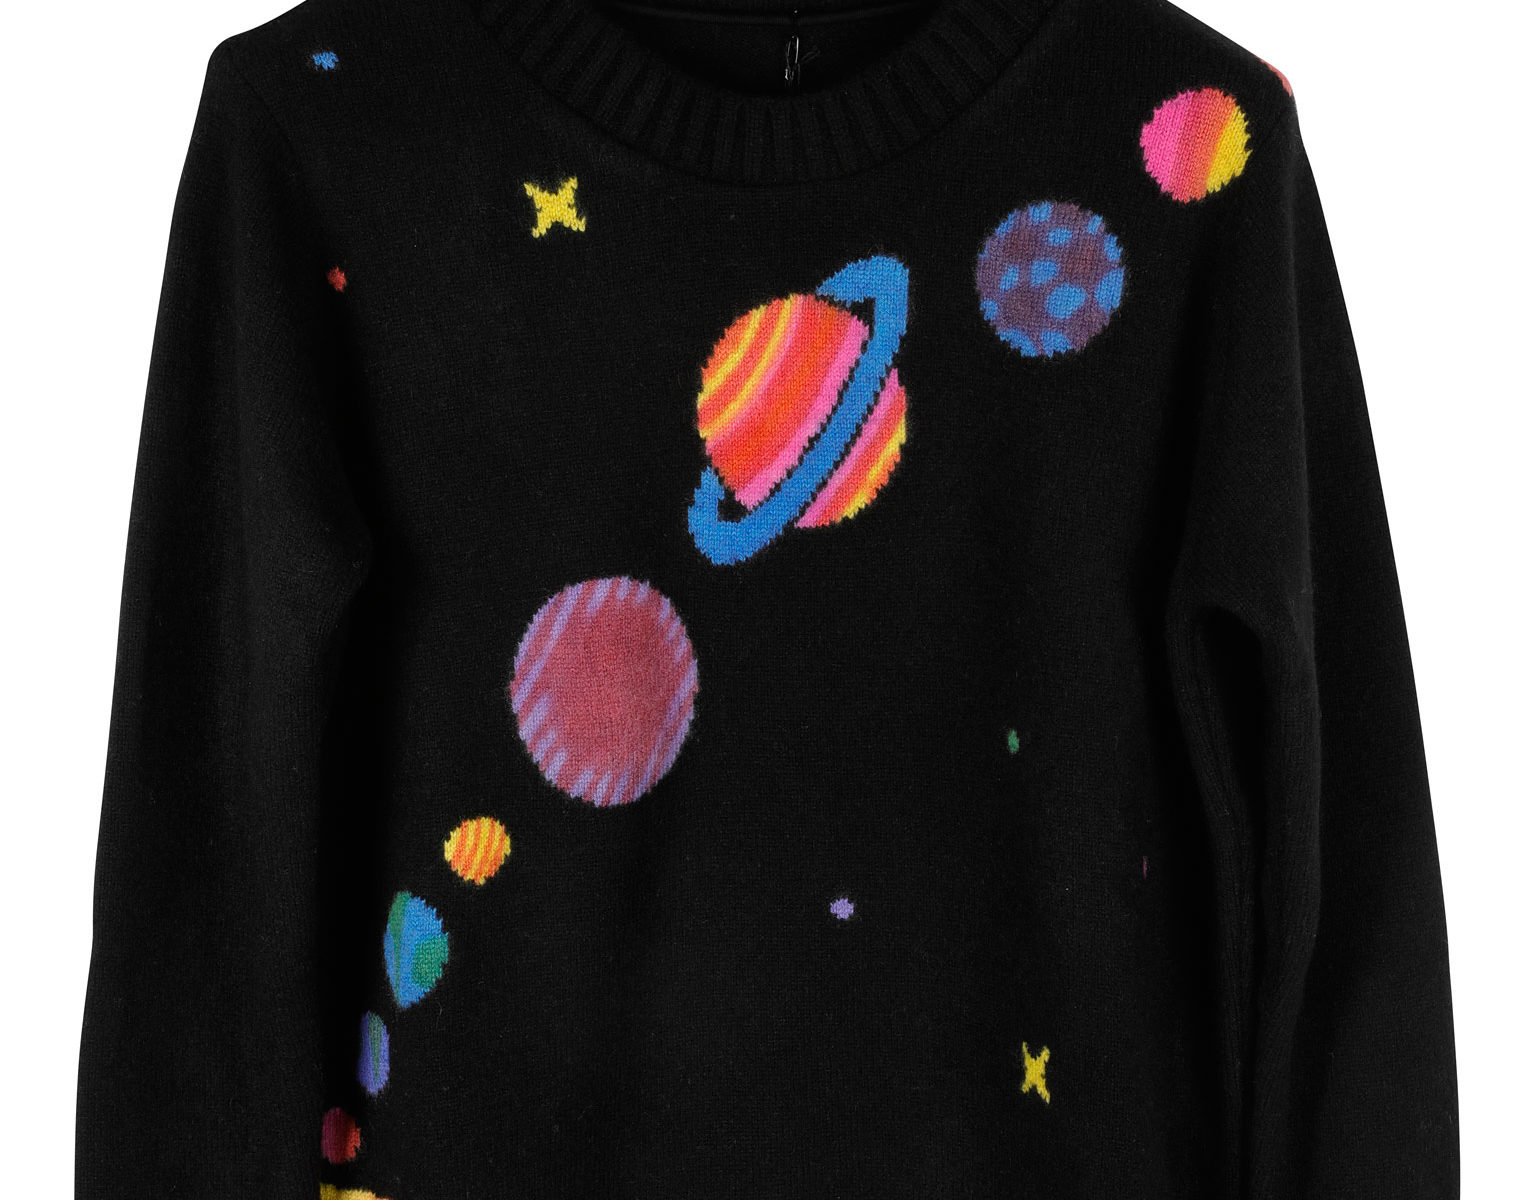 THE ELDER STATESMAN Intarsia Front Painted Solar System Sweater 01